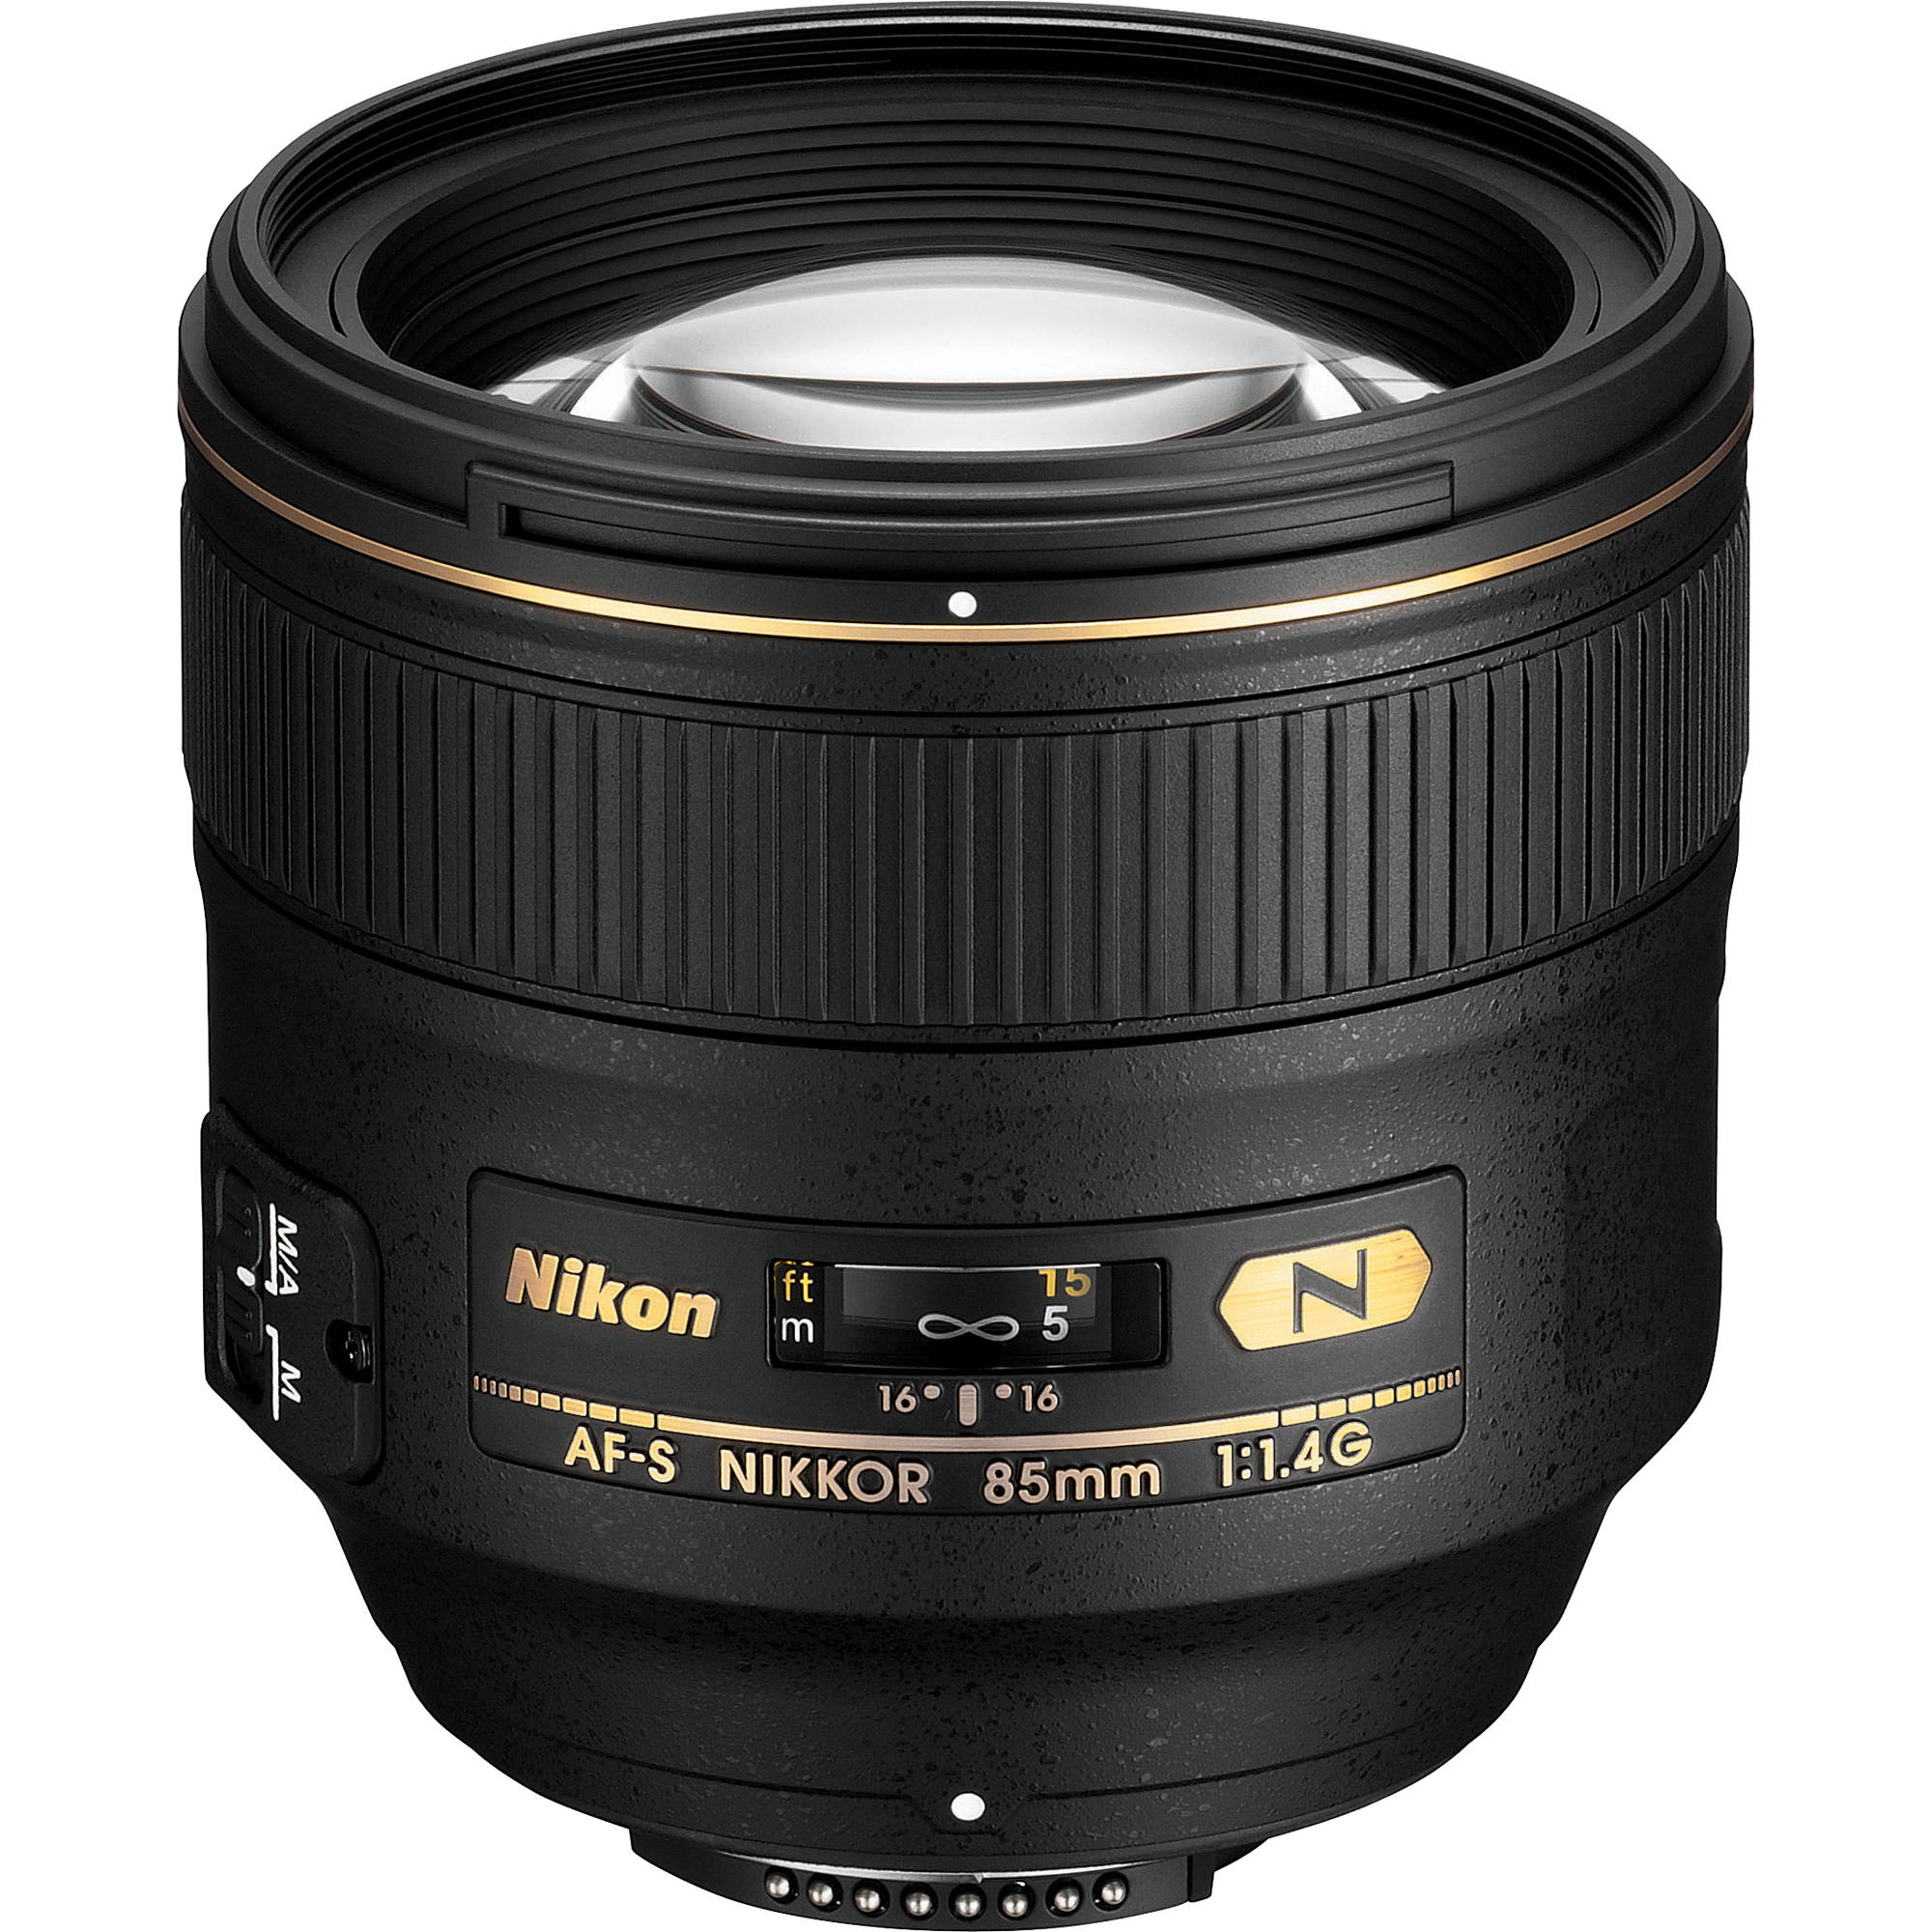 Nikon 85mm Af S Nikkor F 14g Lens 2195 Bh Photo Imaging Products Parts And Controls D800 D800e